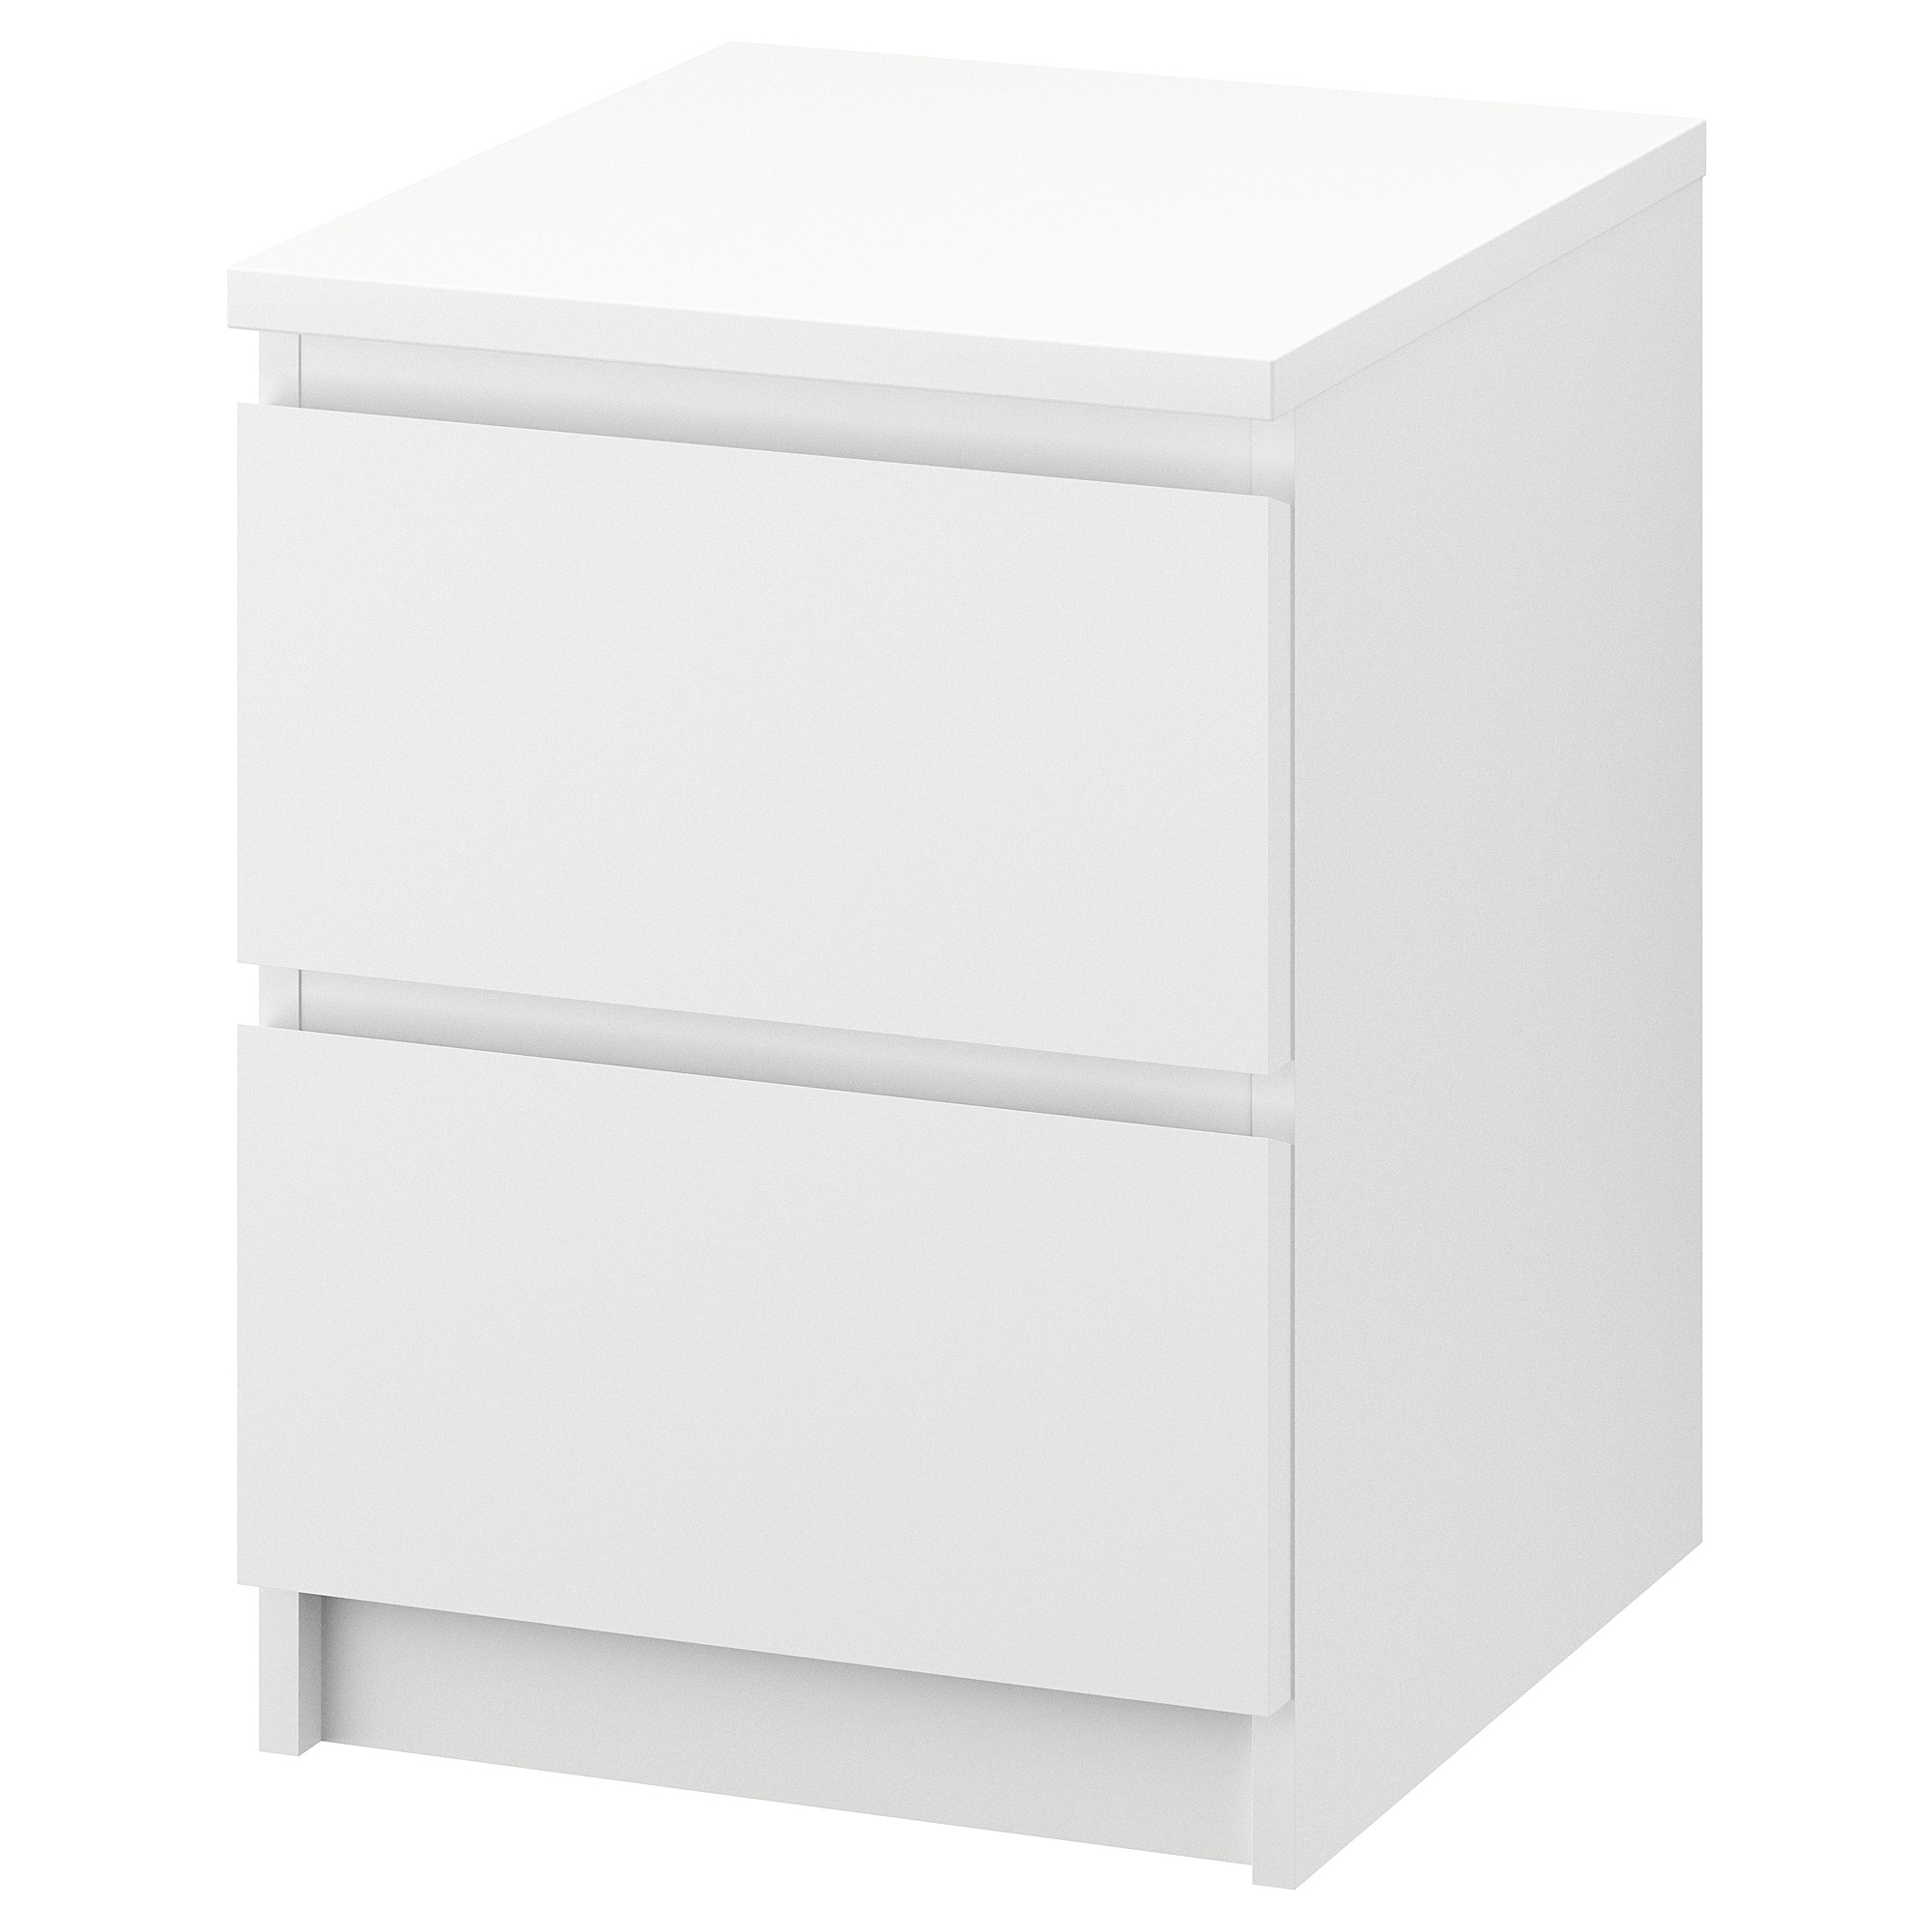 Ikea Malm Nachttisch : malm chest of 2 drawers white ikea ~ Watch28wear.com Haus und Dekorationen